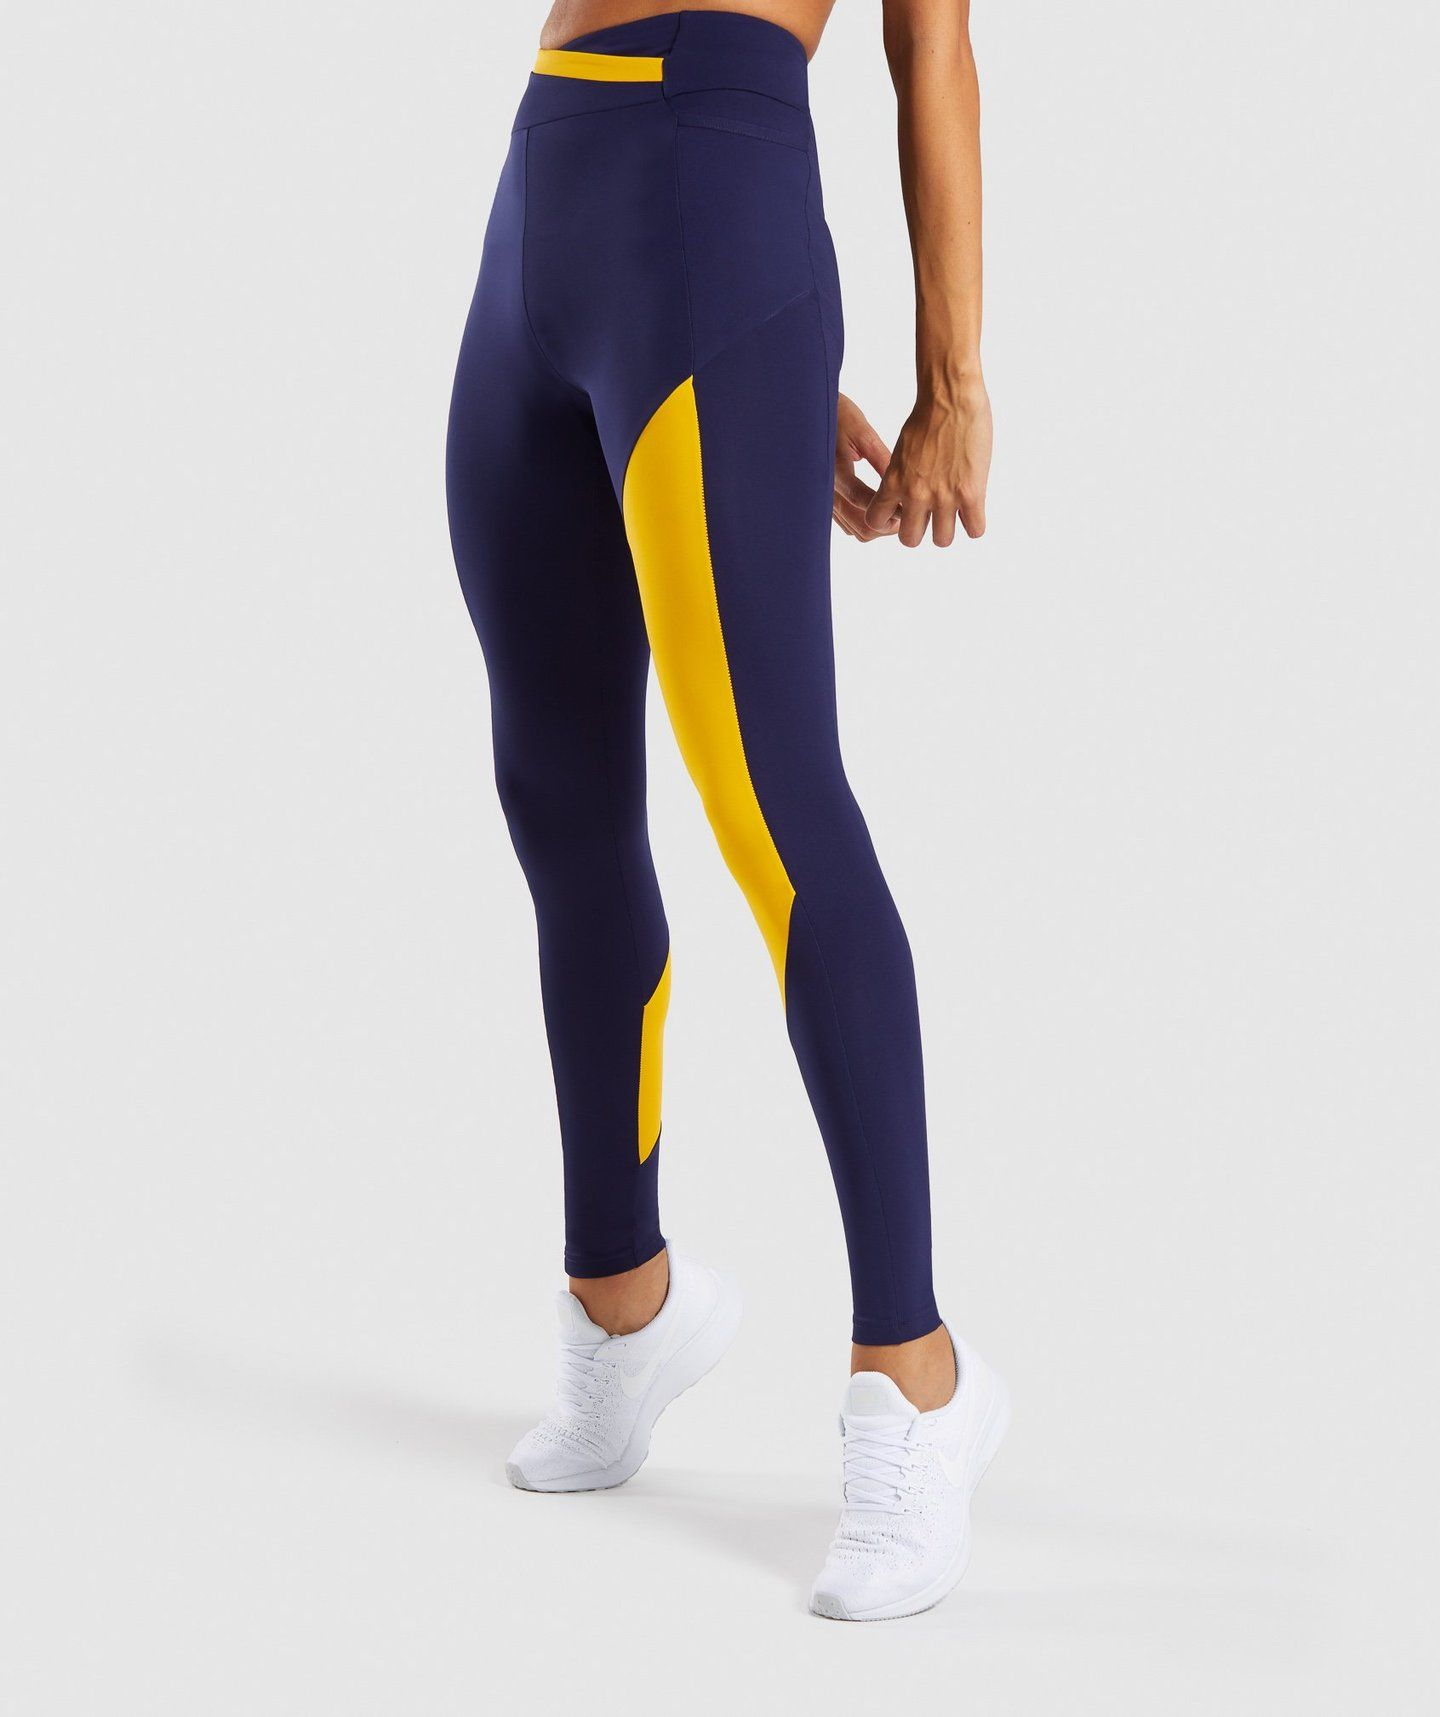 b1ed9b8b7c188 Gymshark Asymmetric Leggings - Evening Navy Blue/Citrus Yellow | Gym ...